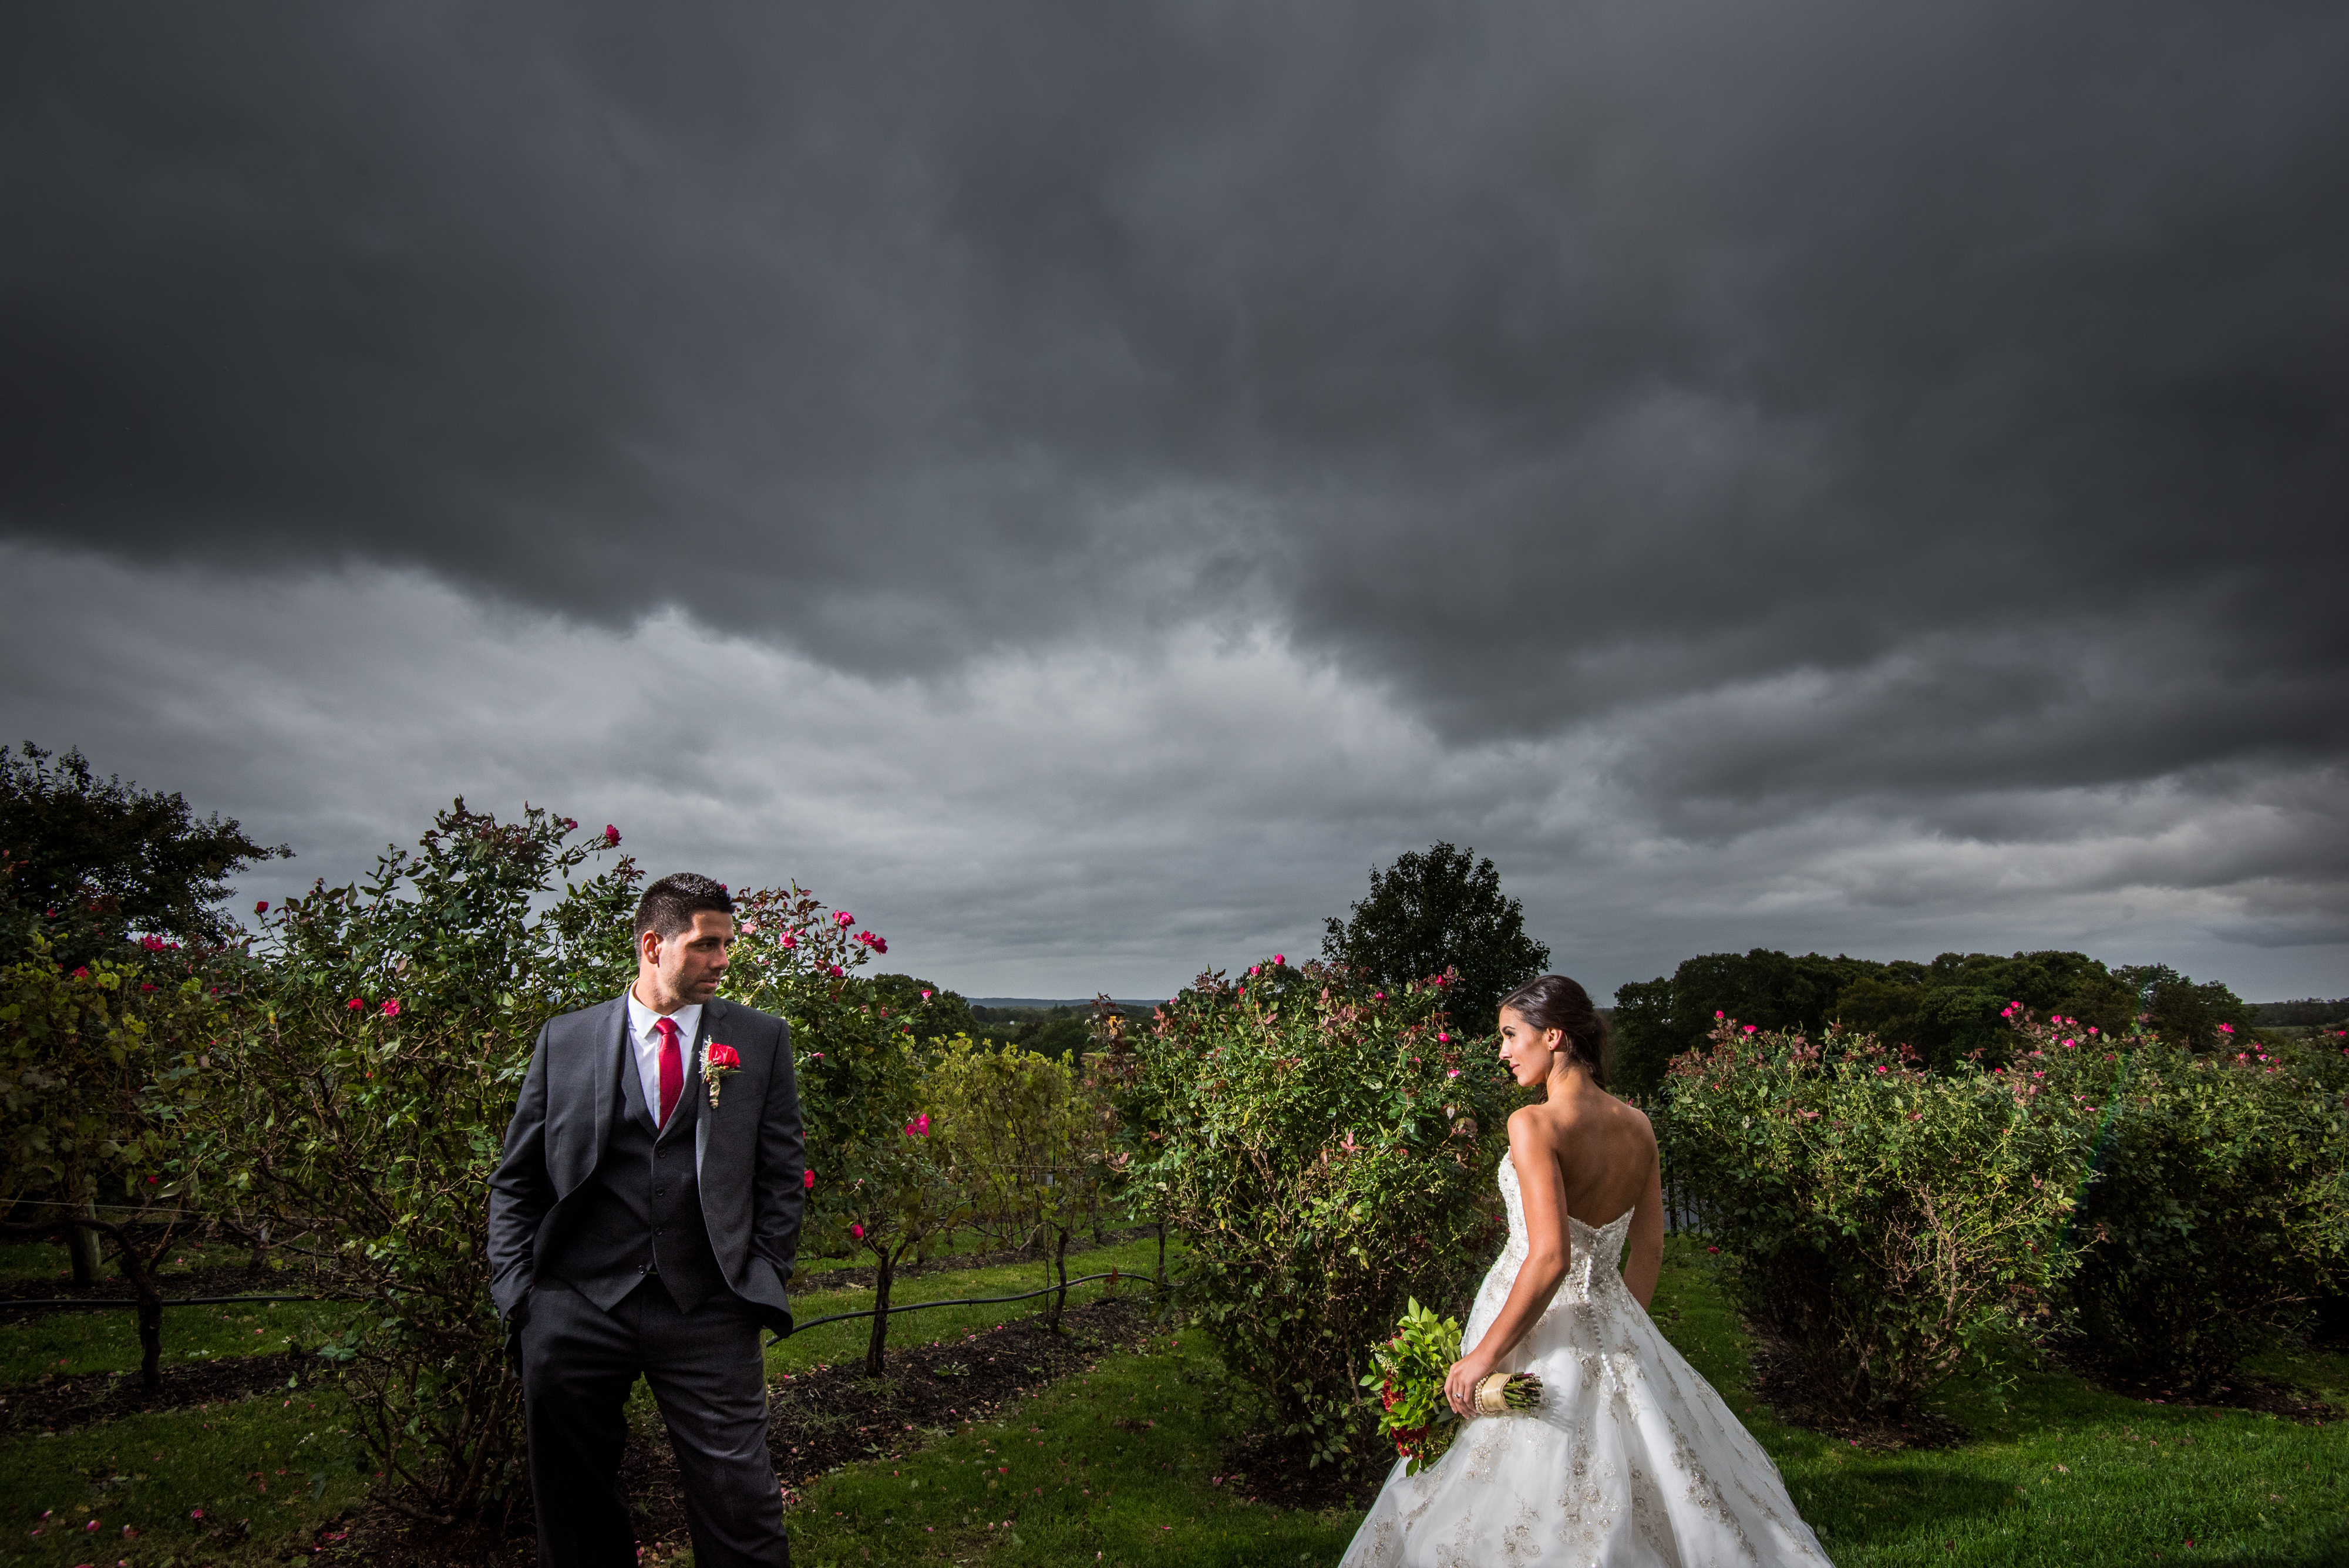 Newlyweds pose in a Giorgio's Baiting Hollow vineyard | Lotus Wedding Photography